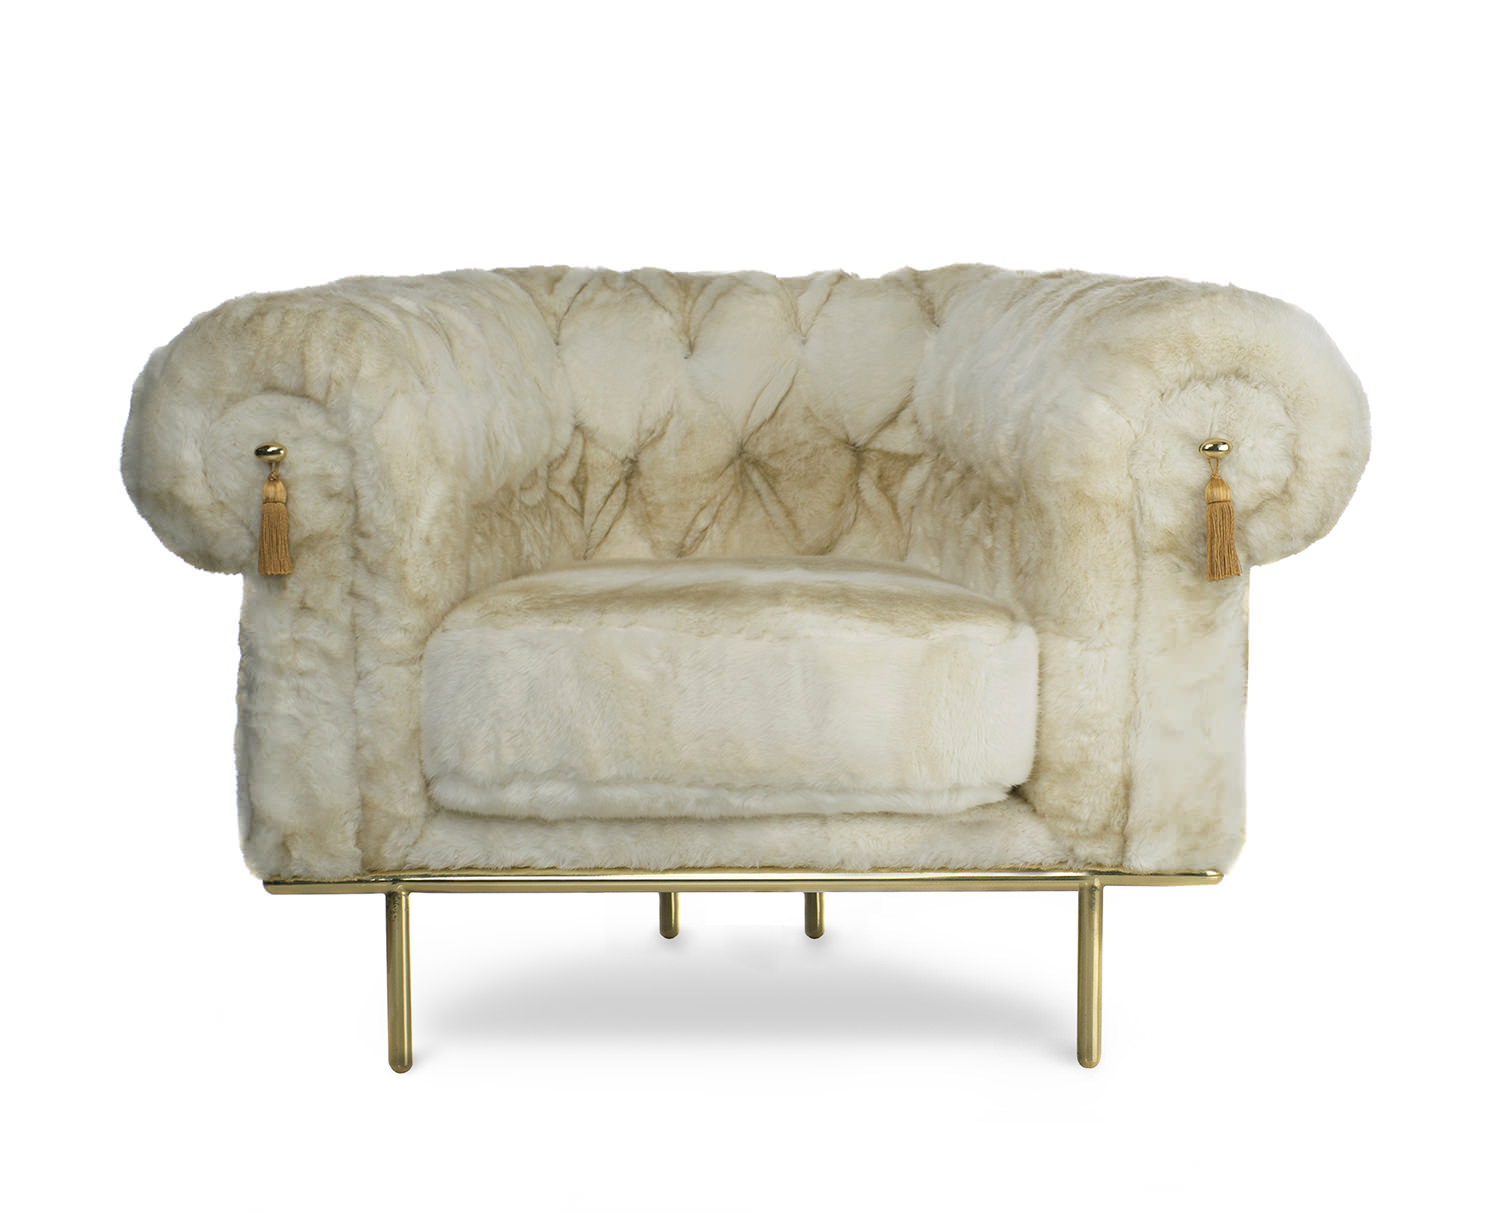 It is said that these sofas, leather settees with a distinctive deep buttoned, quilted leather upholstery and seat low base, were designed in the Uk in the early eighteenth (...)